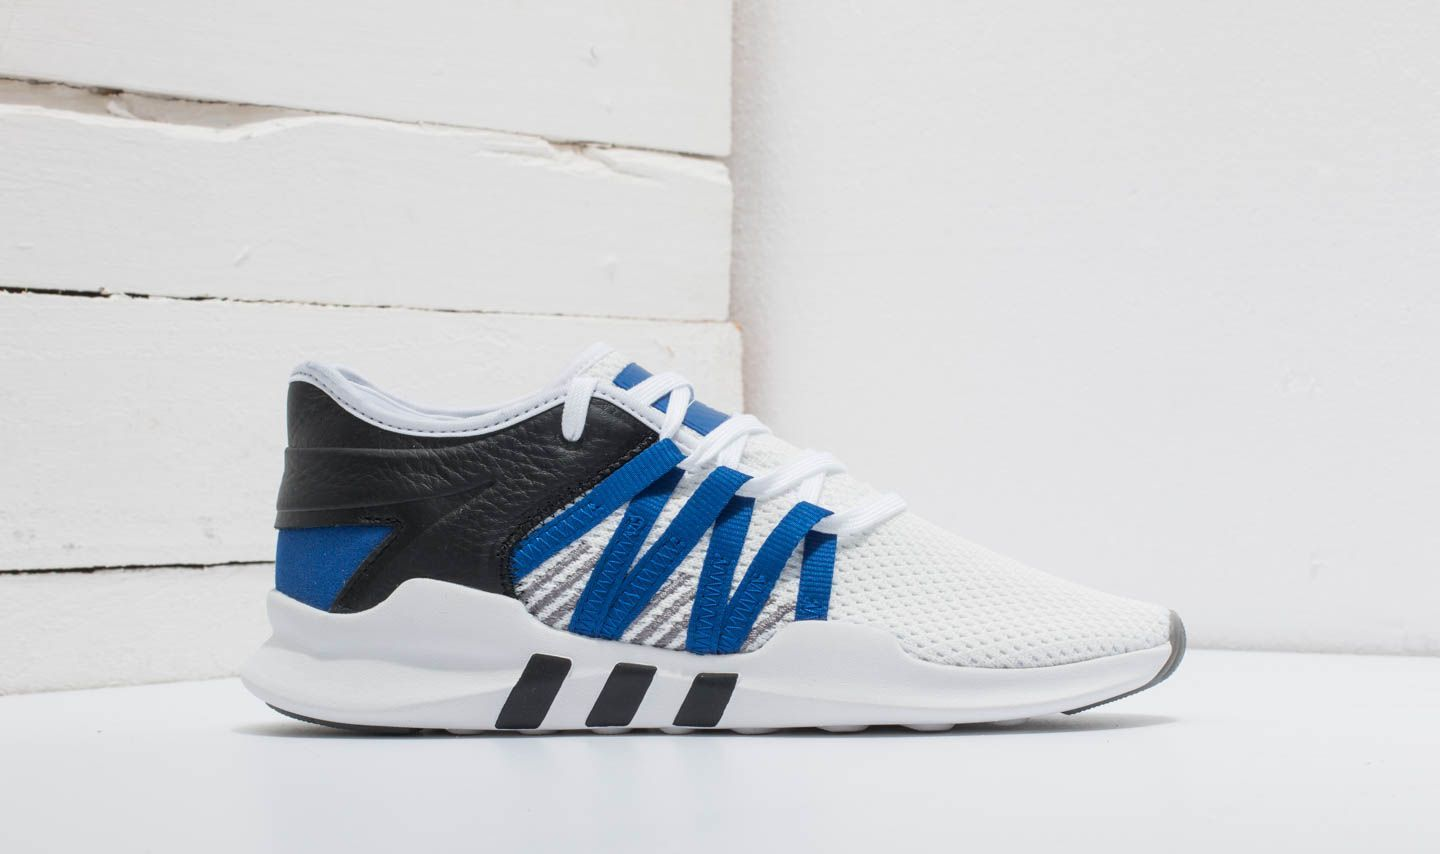 official photos 8634c 25f1b adidas EQT Racing ADV W Ftw White Collegiate Royal Core Black at a great